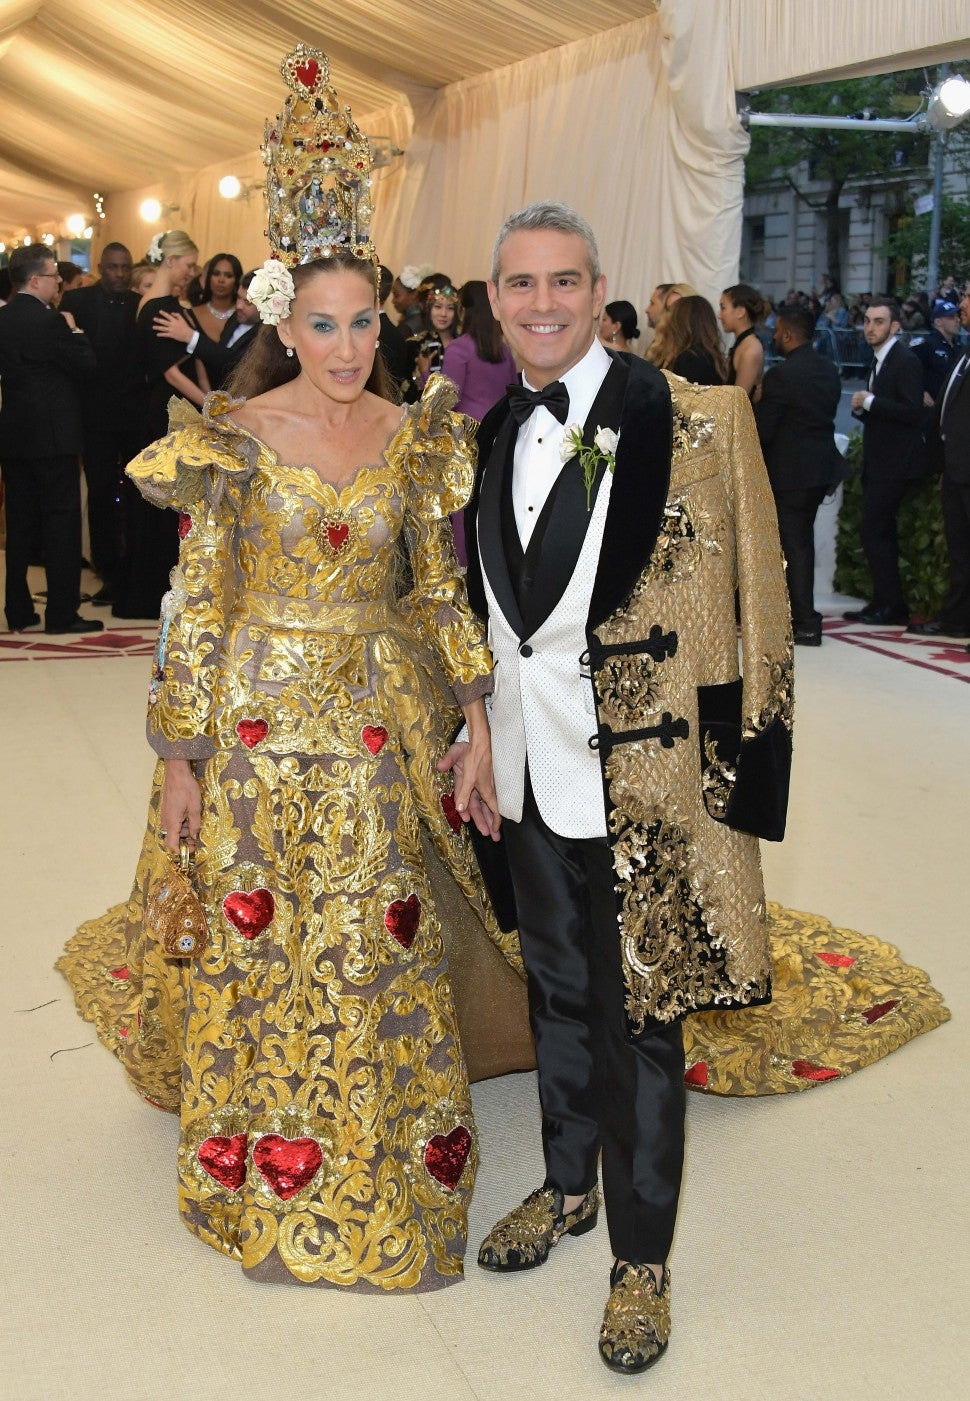 Sarah Jessica Parker and Andy Cohen at the 2018 Met Gala in New York